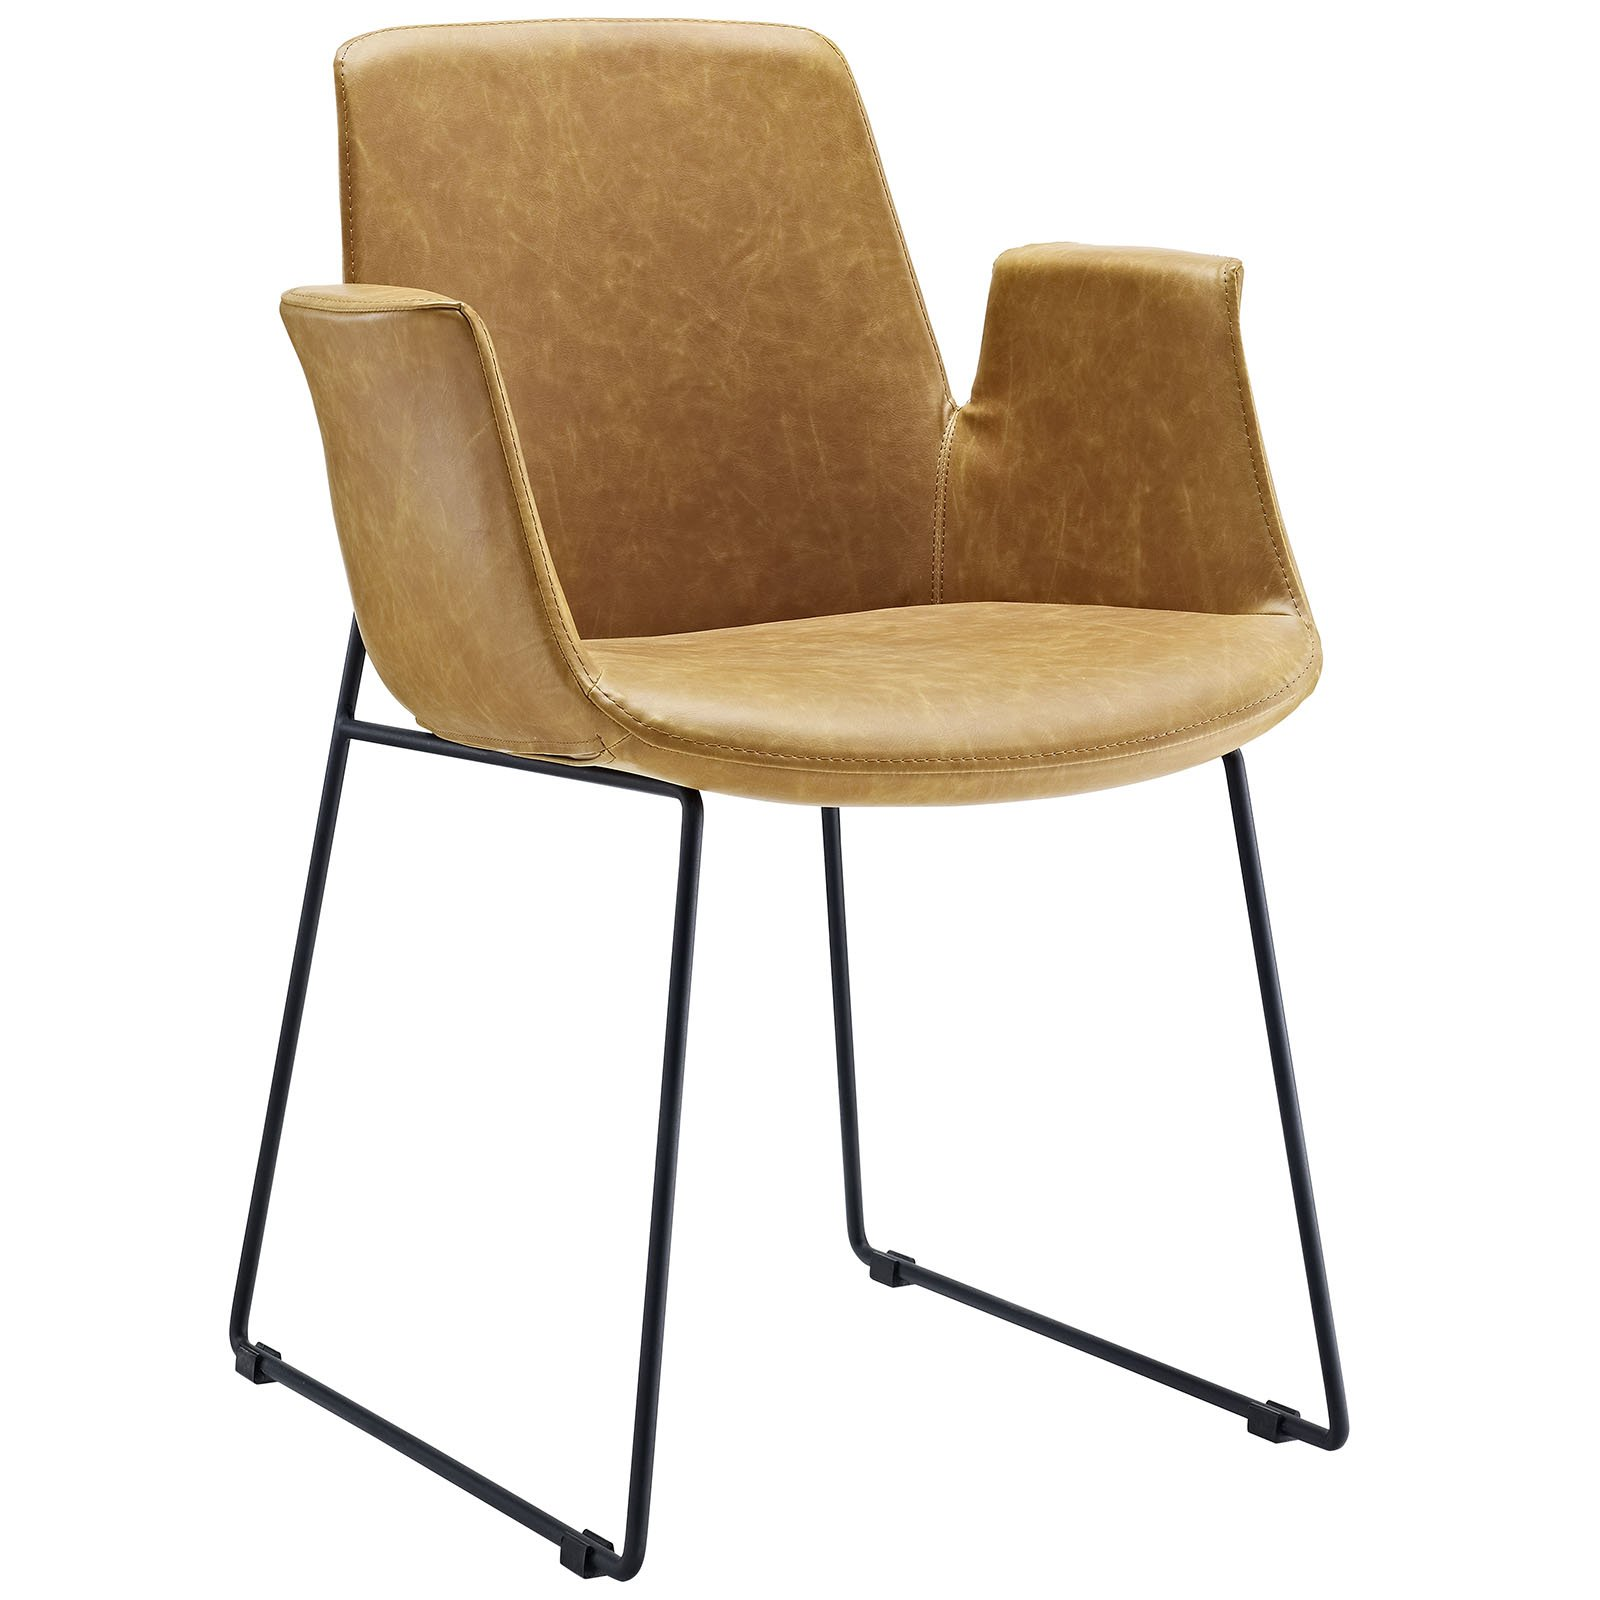 Modway EEI-1806-TAN Aloft Mid-Century Modern Leather, Dining Armchair, Tan by Modway (Image #1)